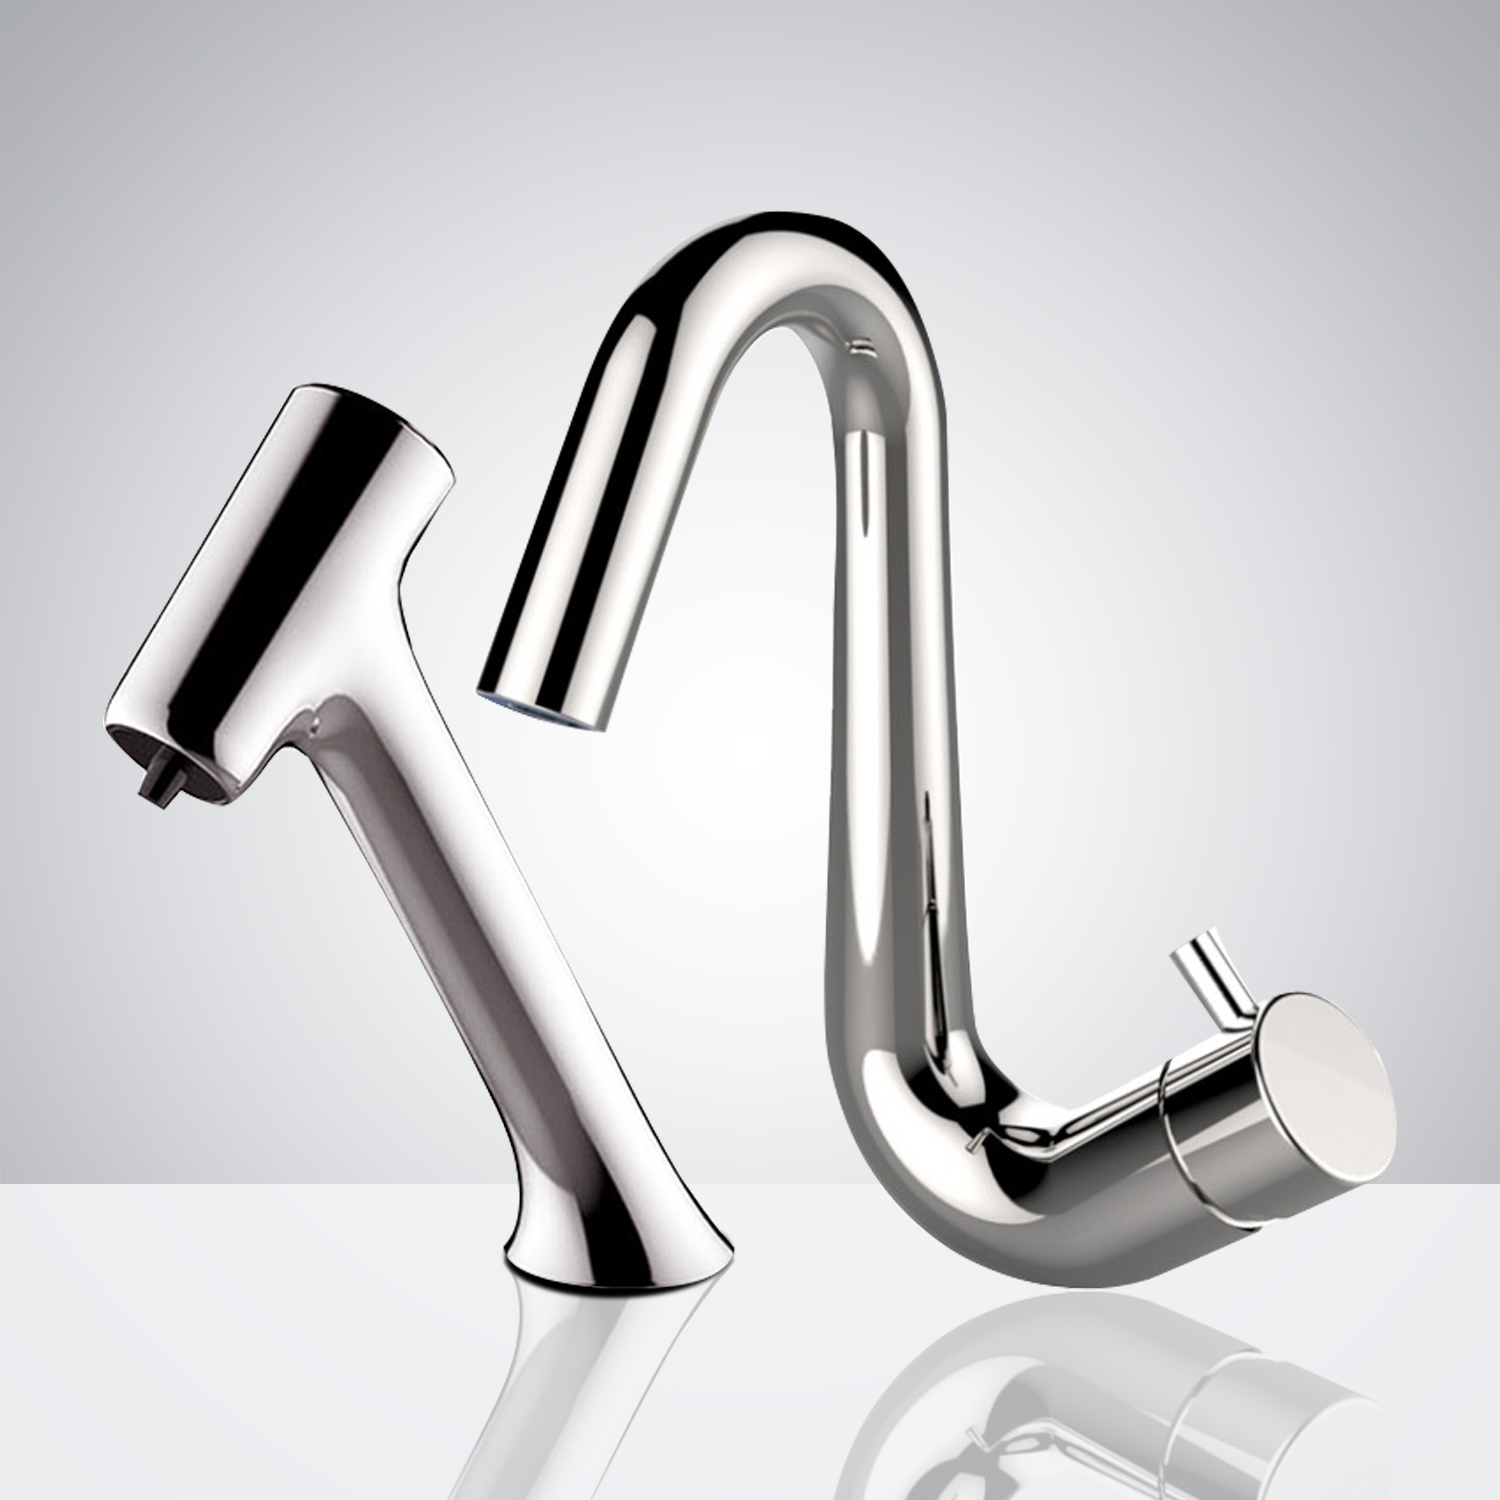 Fontana Le Havre Chrome Finish Freestanding Automatic Commercial Sensor Faucet & Automatic Soap Dispenser